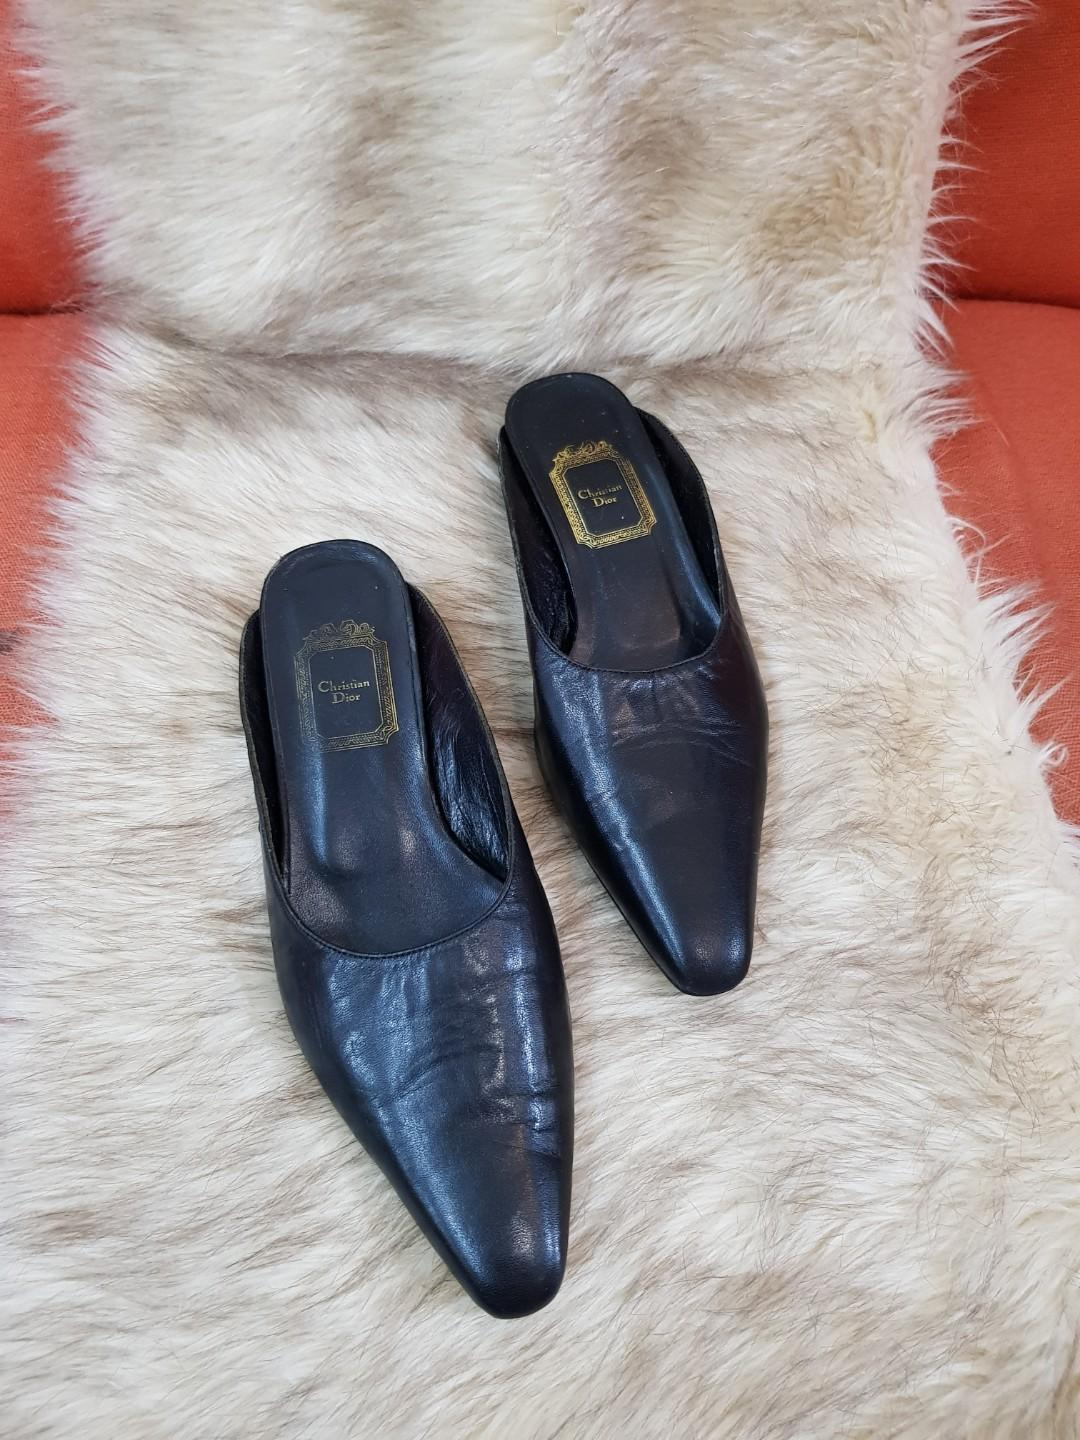 93eb02b68 Authentic Christian Dior Black Leather Mules Flats Size 39 on Carousell